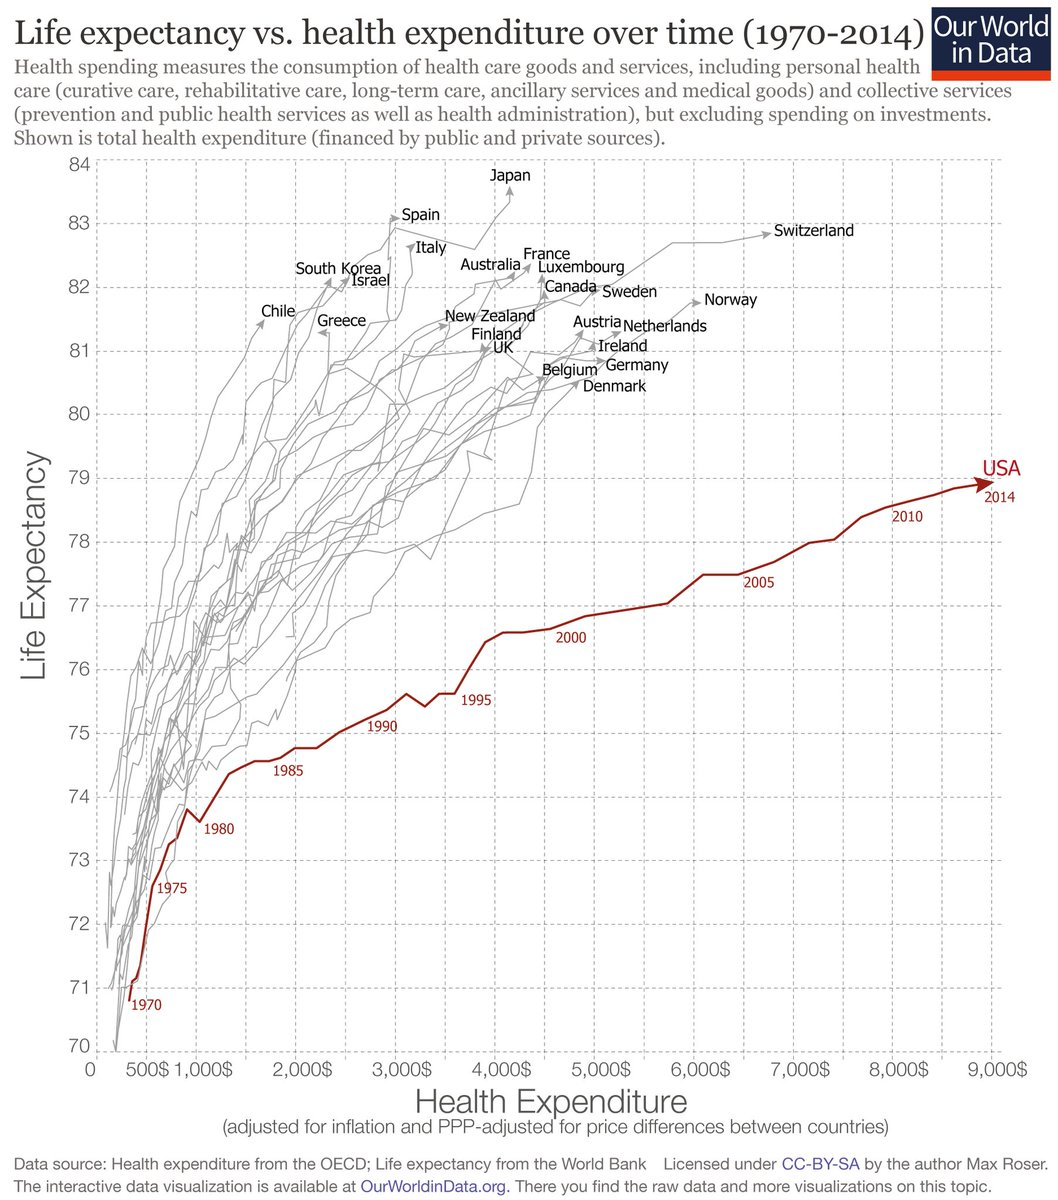 life-expectancy-vs-health-ependture-for-select-countries